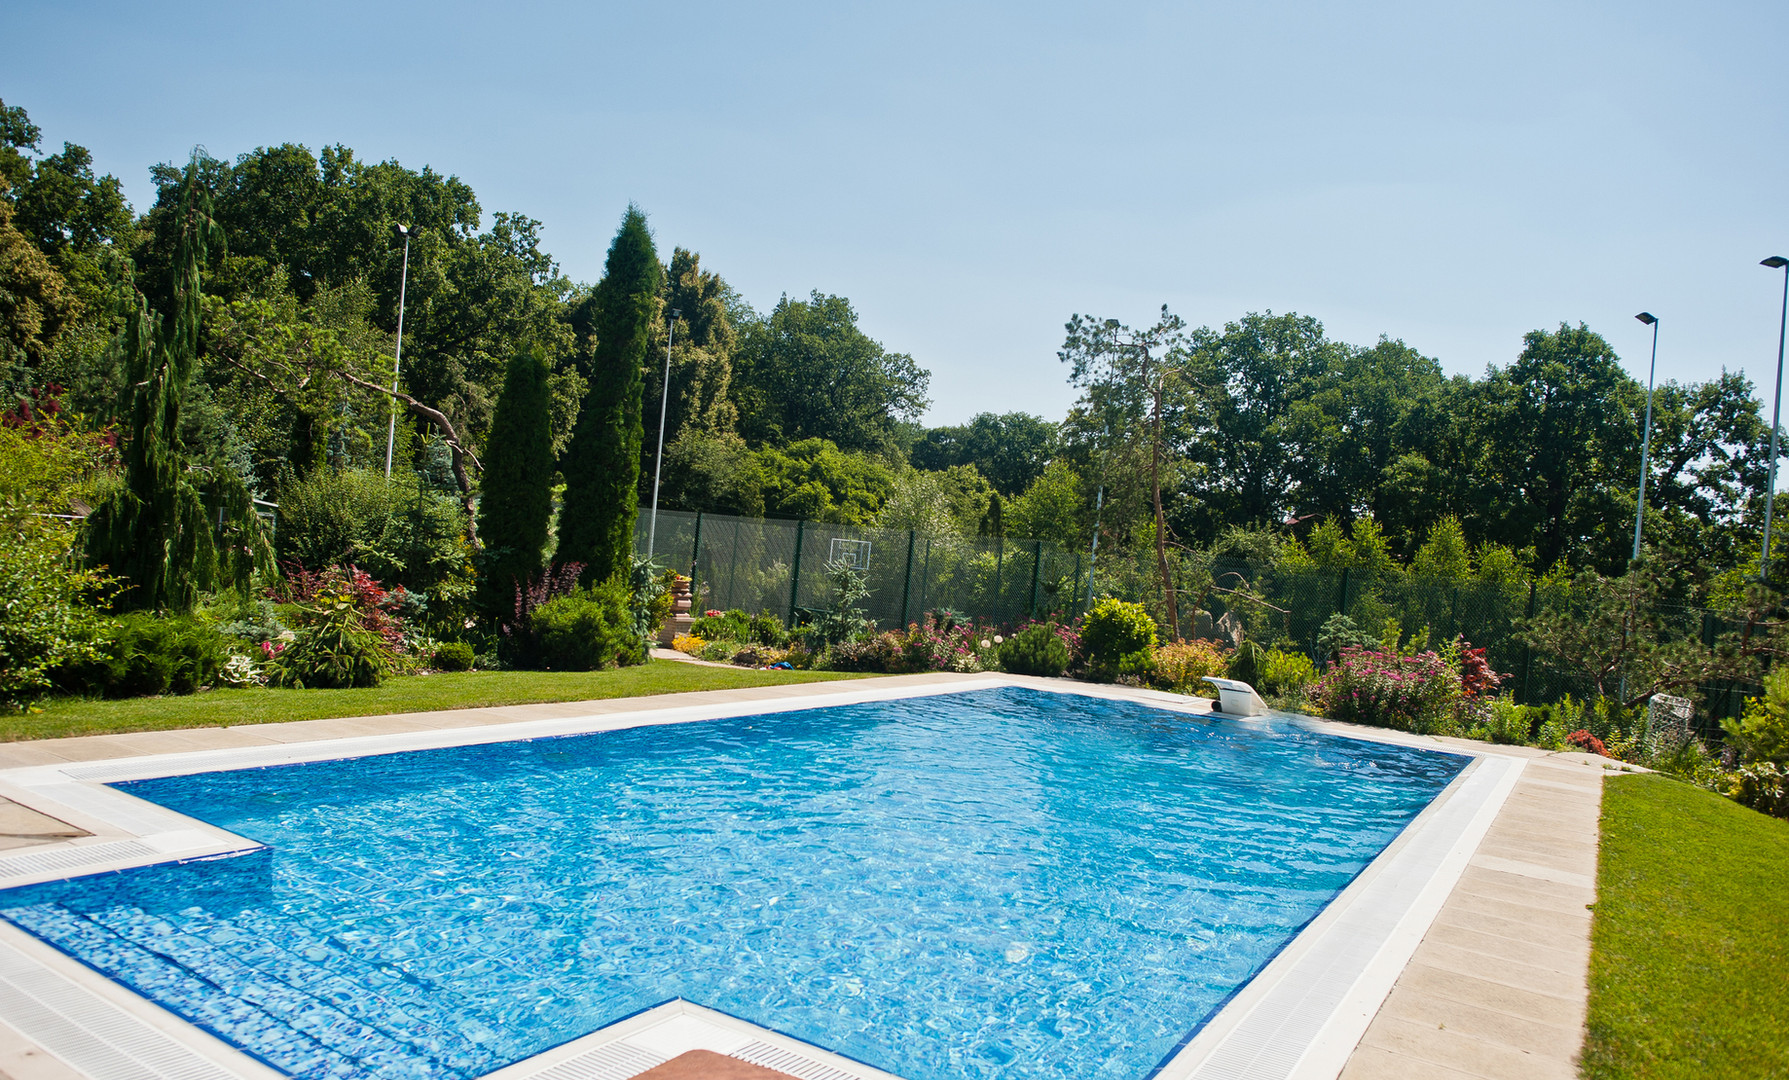 Simple large pool and landscaping